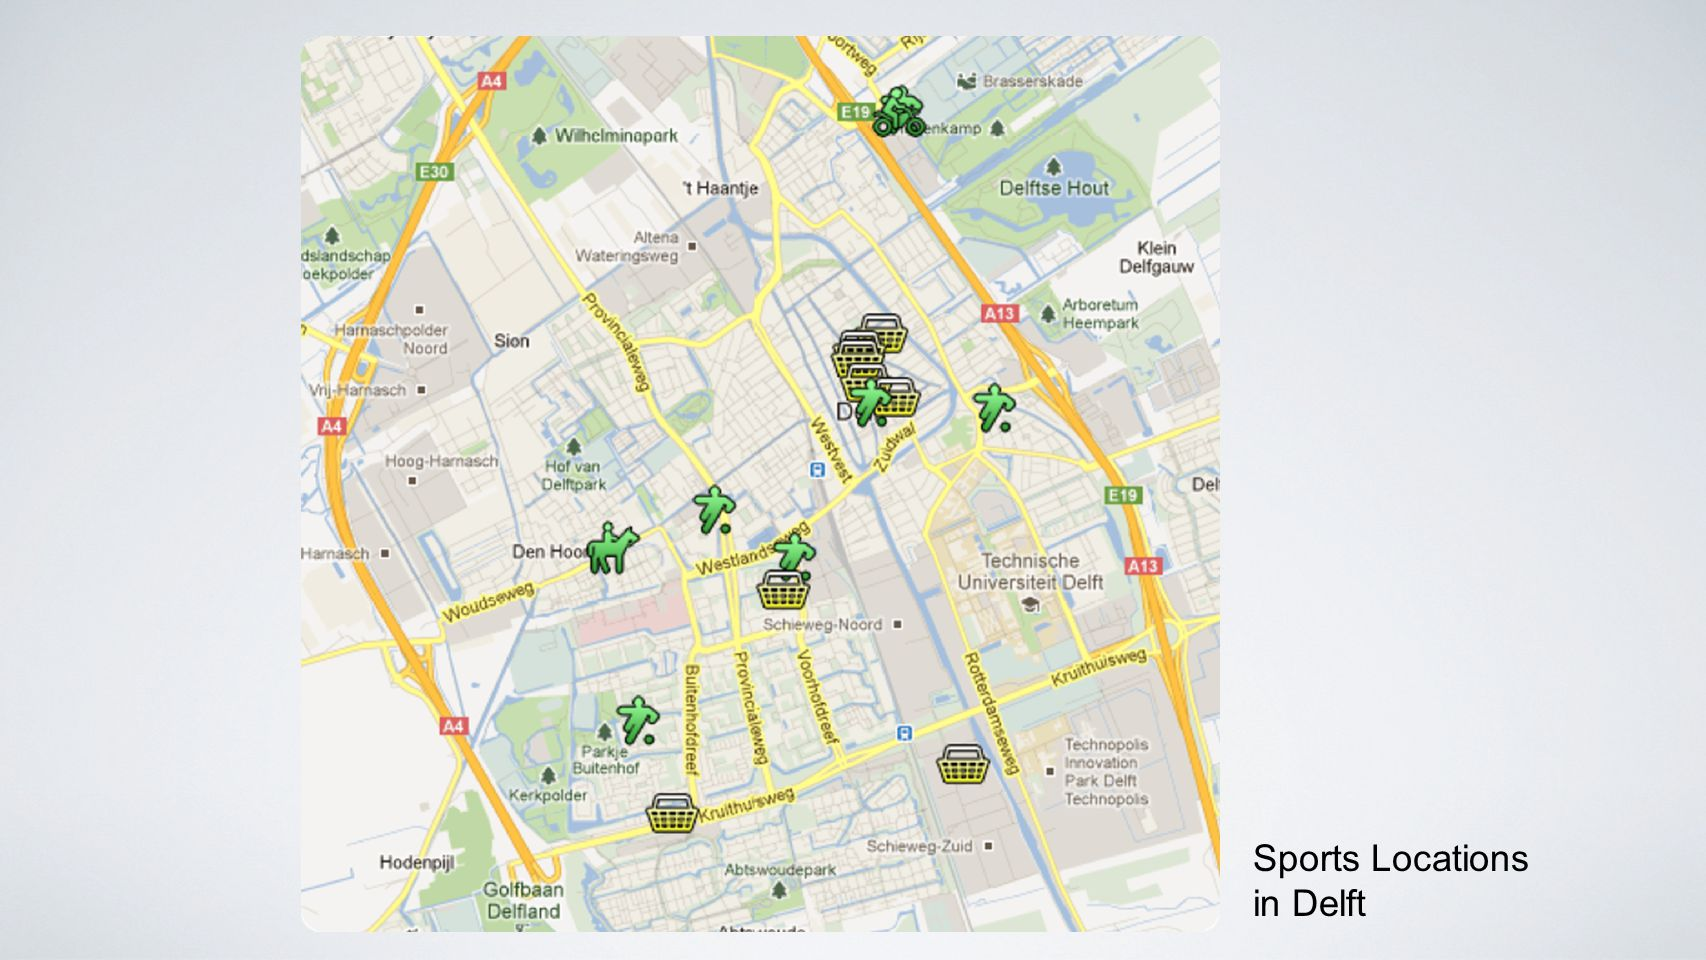 Sports Locations in Delft